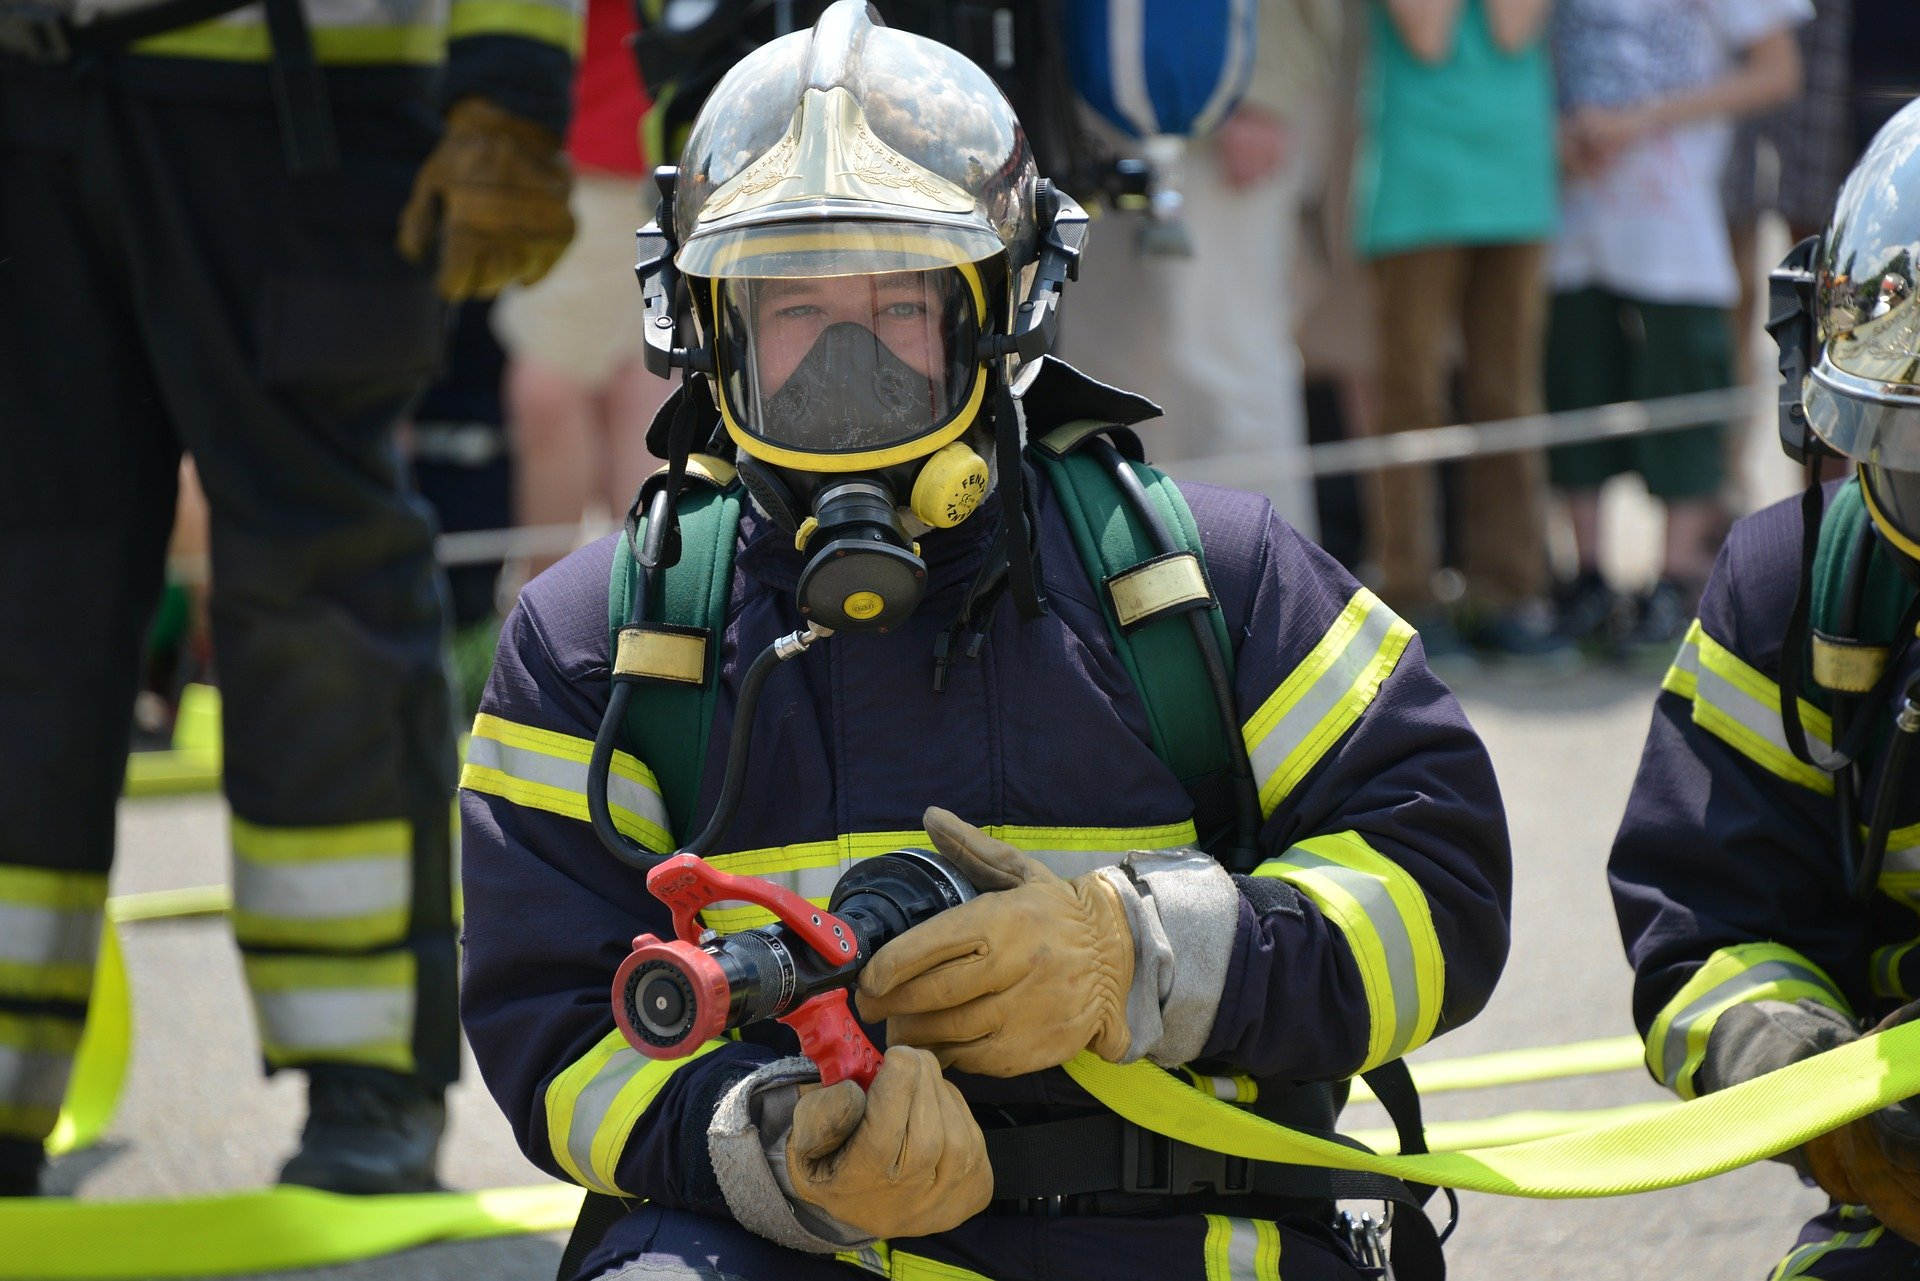 A firefighter wearing respiratory protection | Source: Pixabay